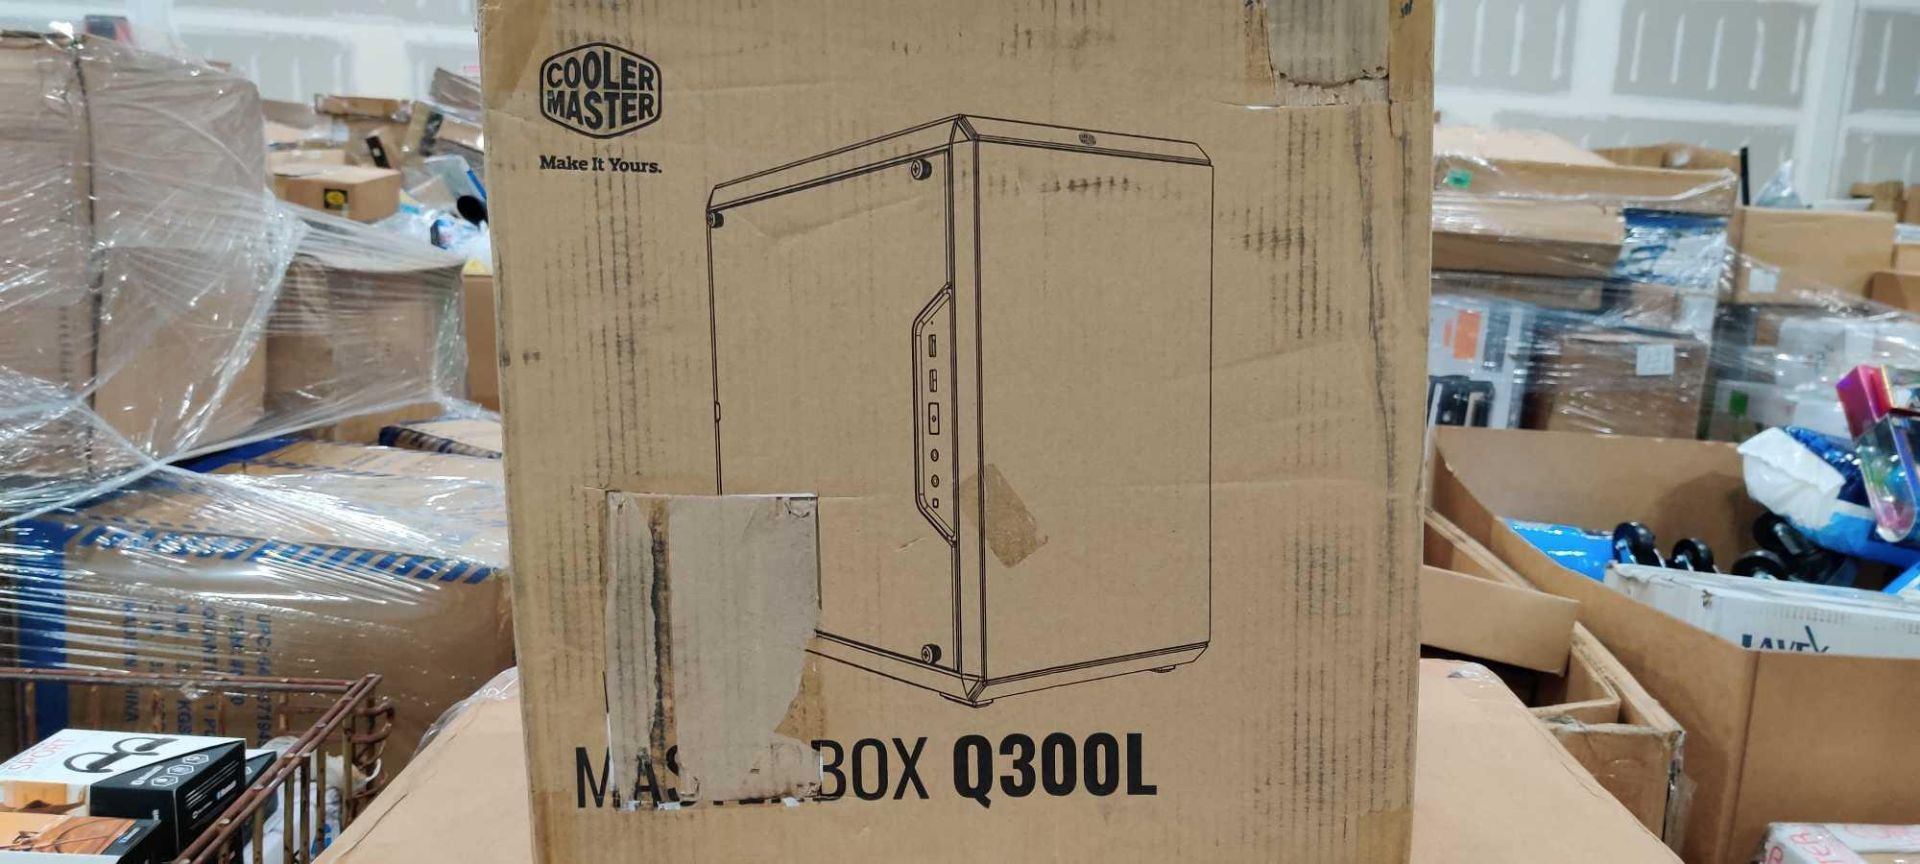 Single Pallet - Image 10 of 18